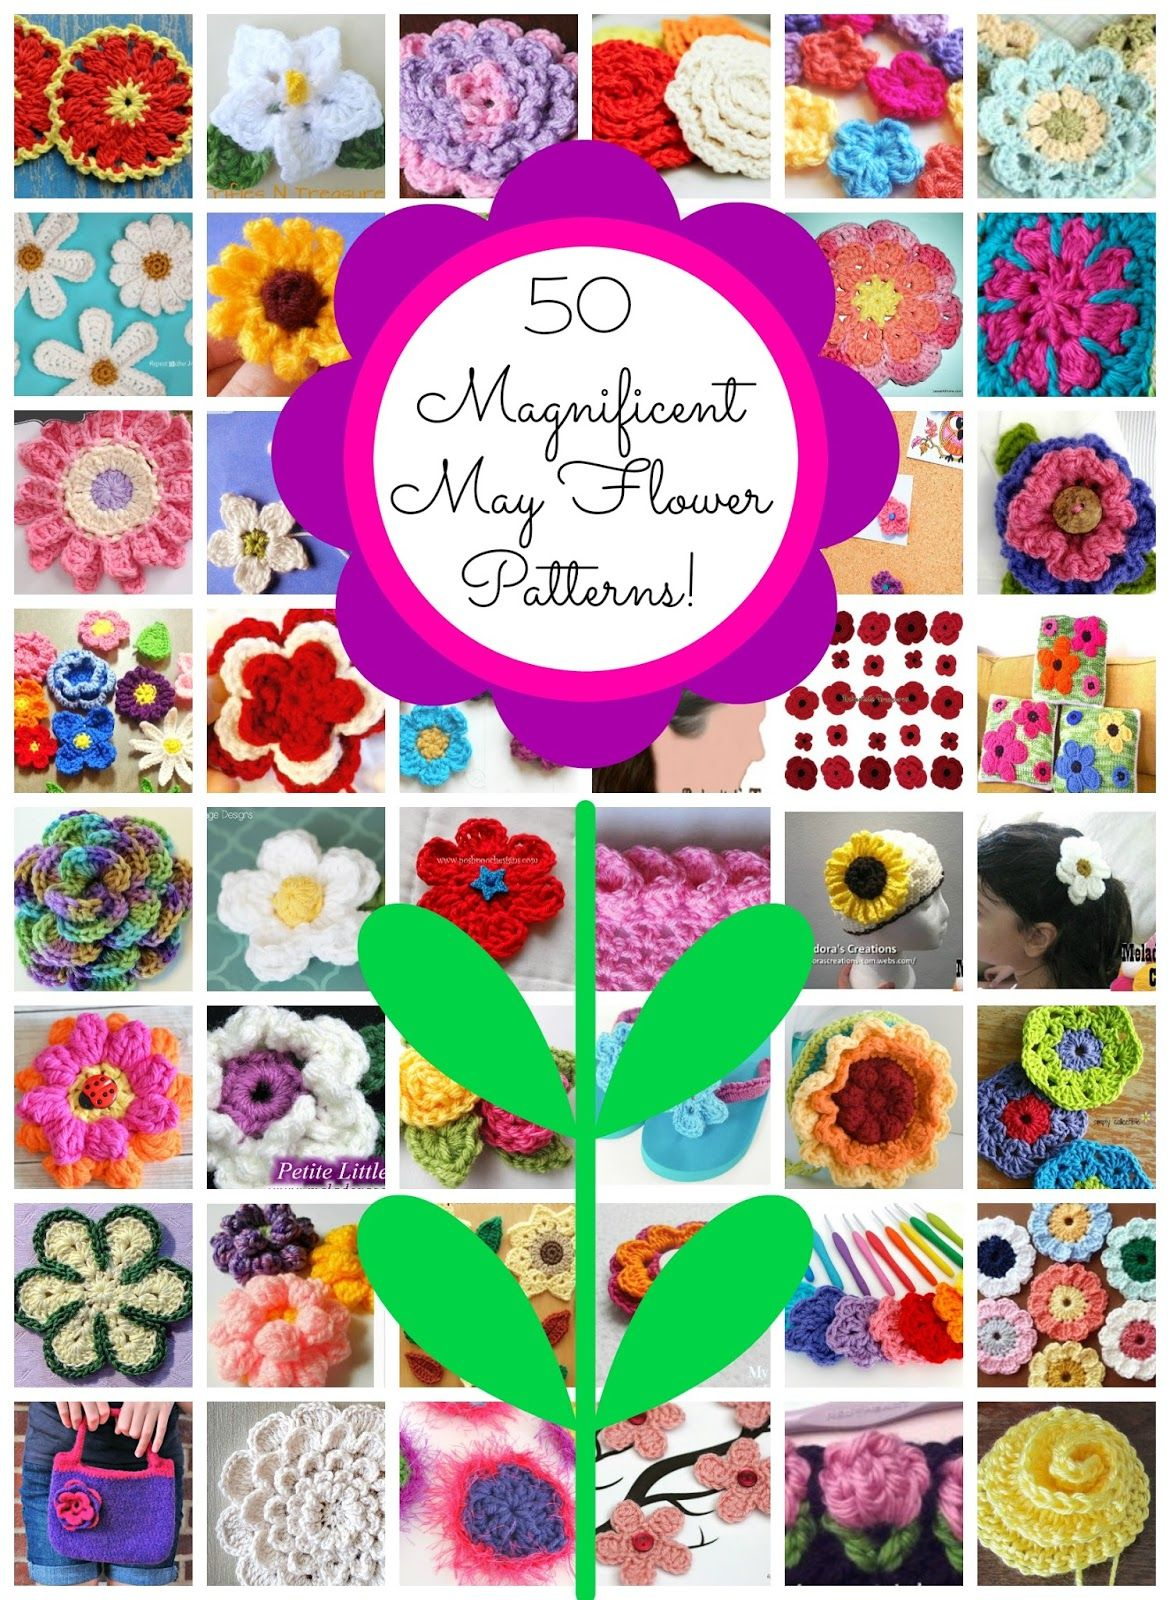 Magnificent May Flowers! 50 Free Crochet Patterns | Free crochet ...